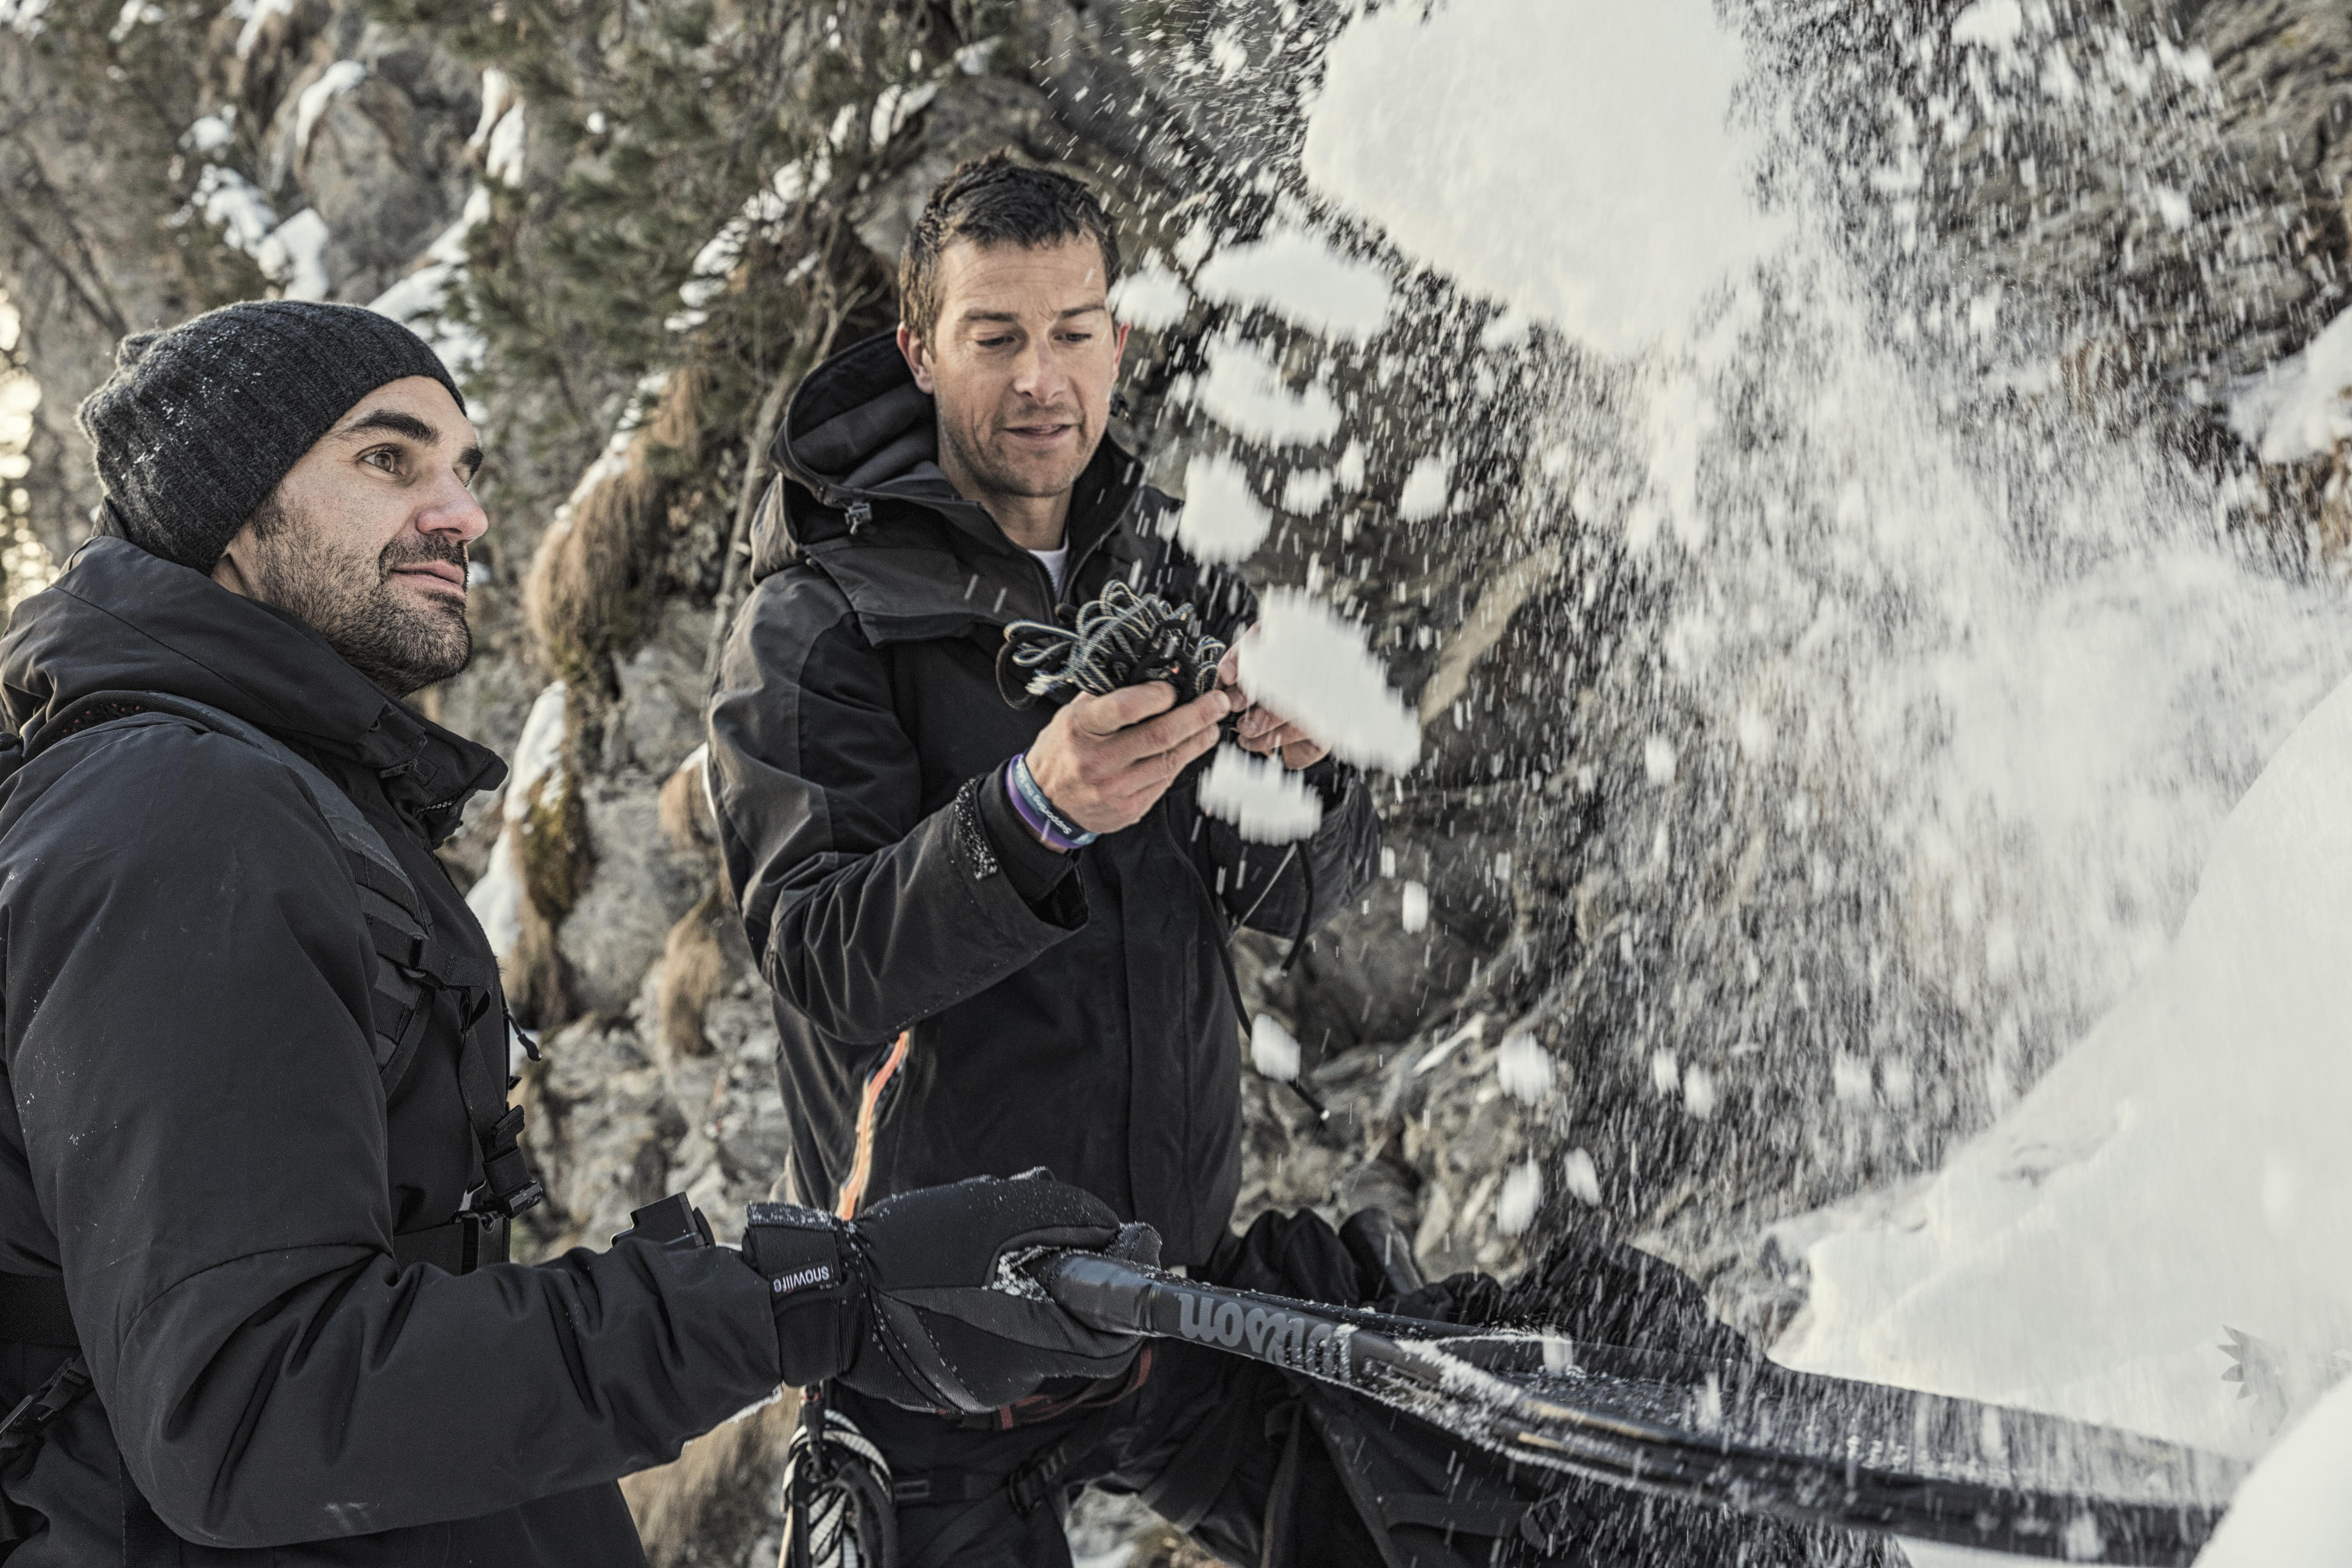 Roger Federer recently appeared on Running Wild with Bear Grylls